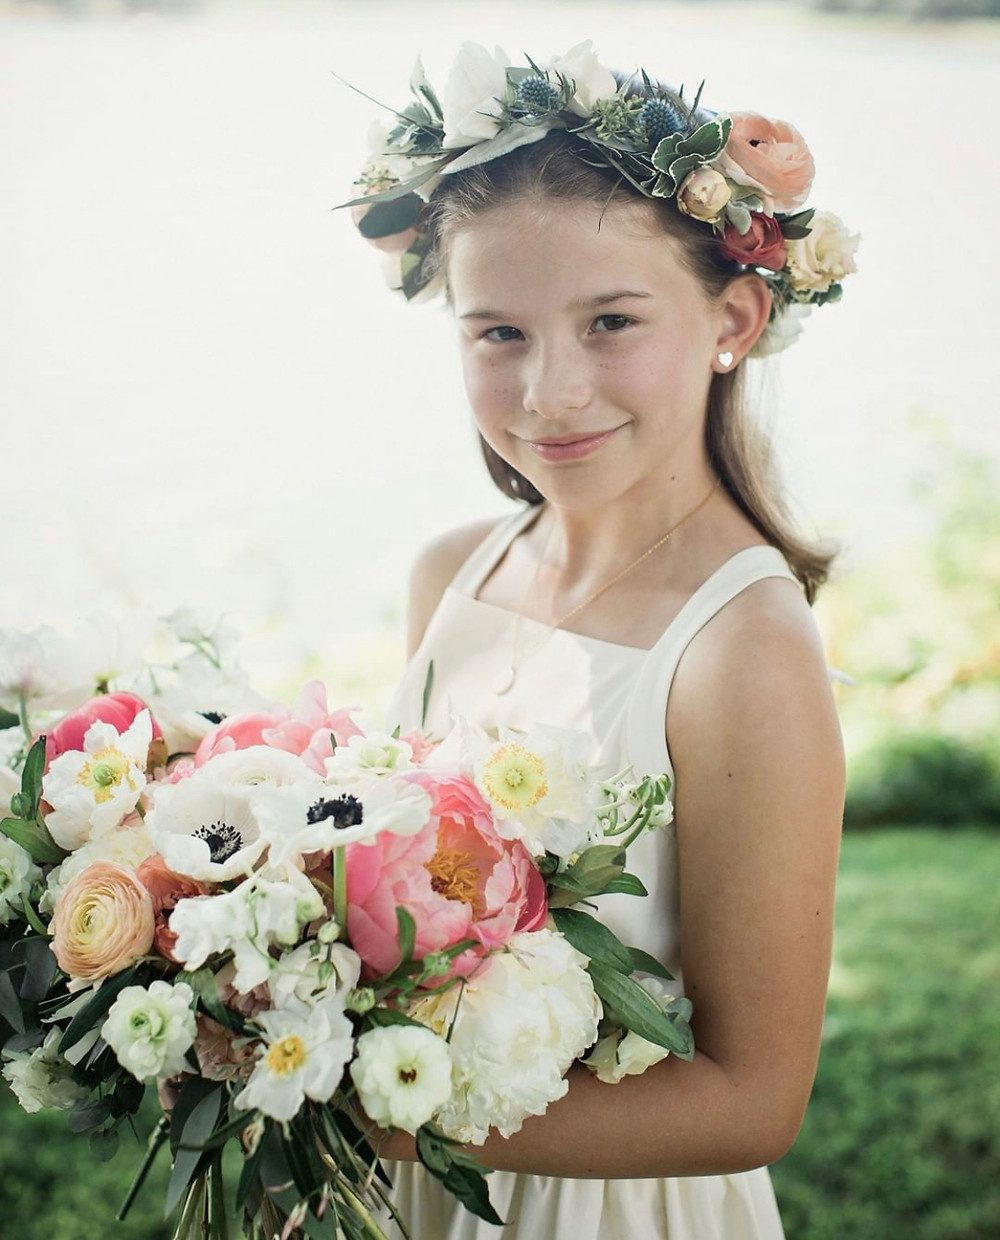 Flower crown & Coral peony wedding bouquet at Wainwright House